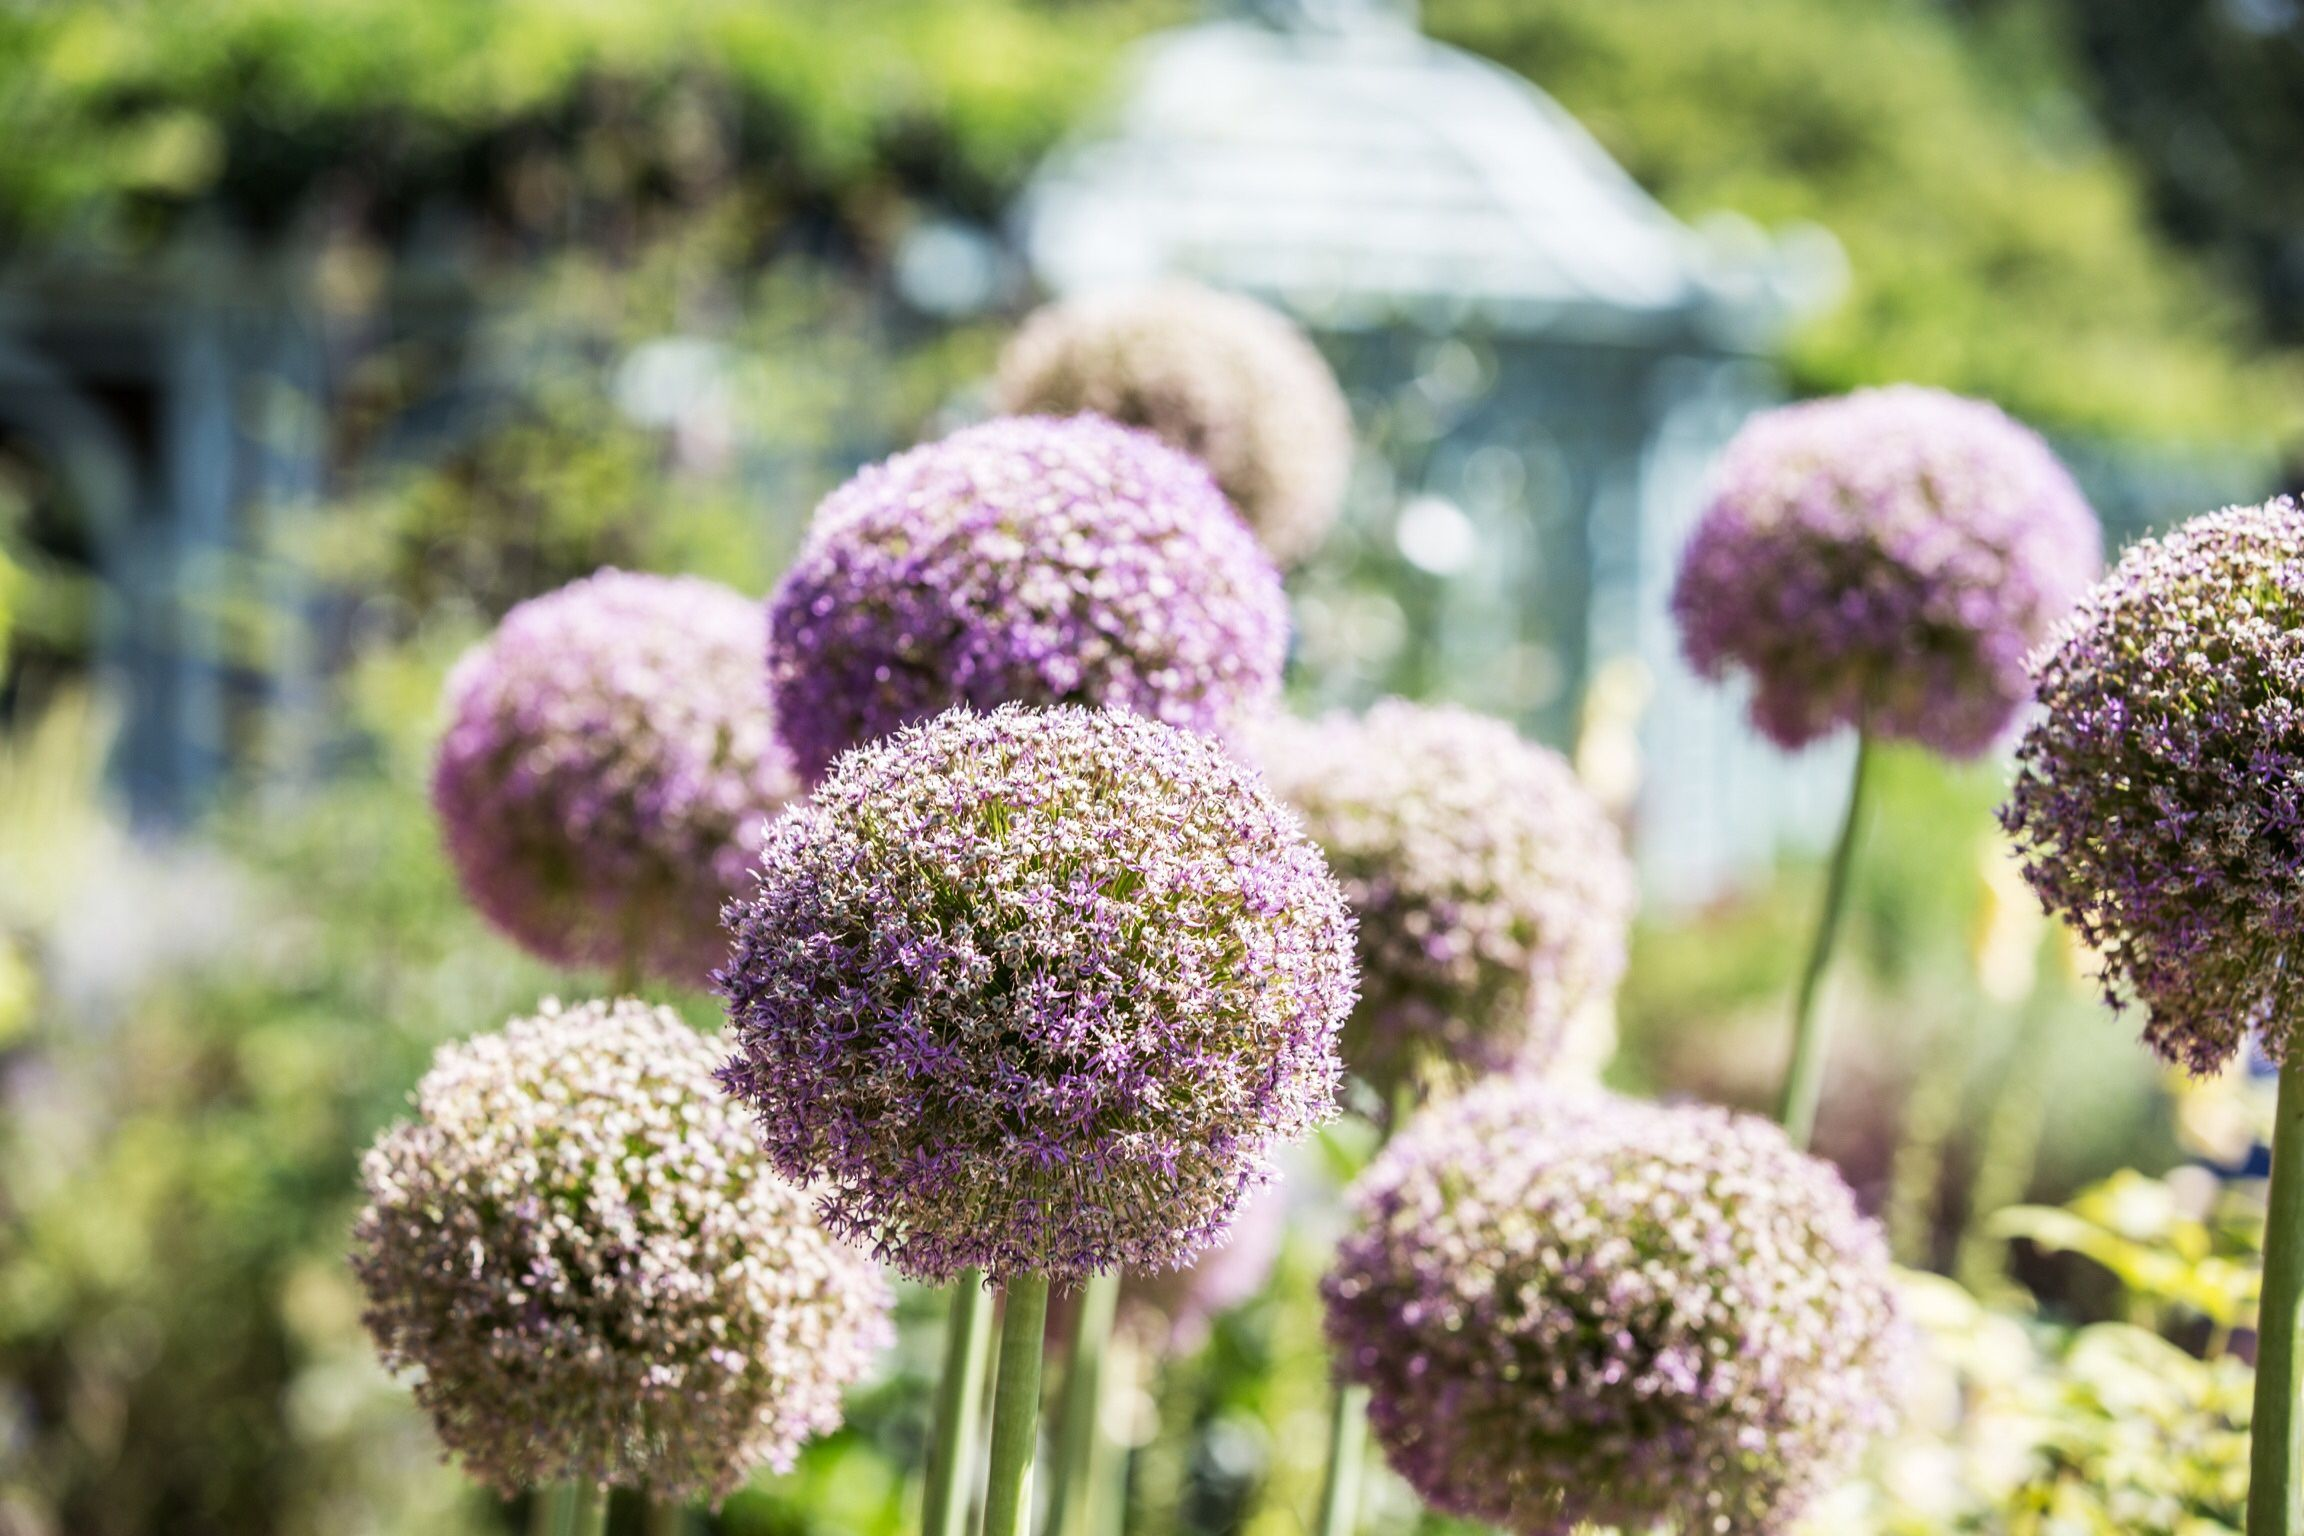 How To Grow And Care For Allium Ornamental Onion